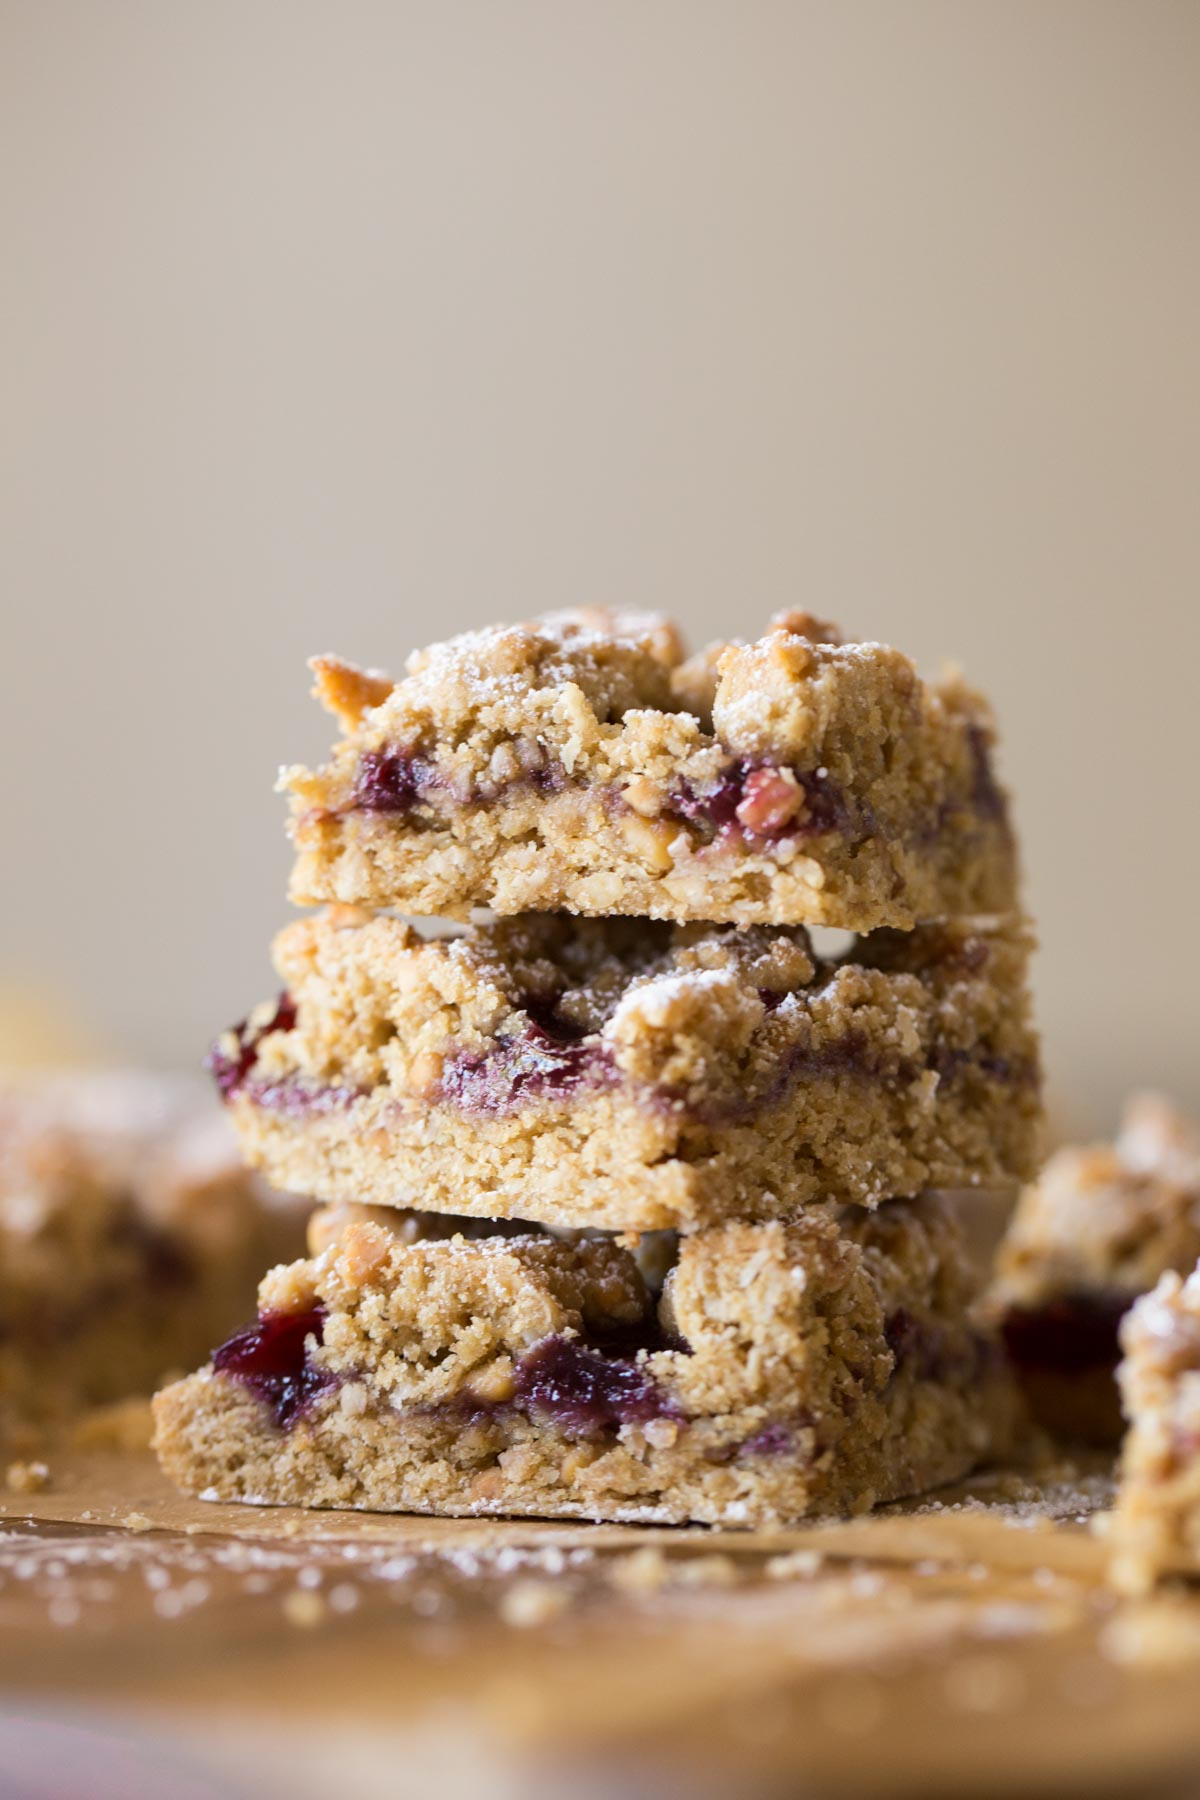 Three Peanut Butter and Jelly Oat Bars stacked on top of each other.